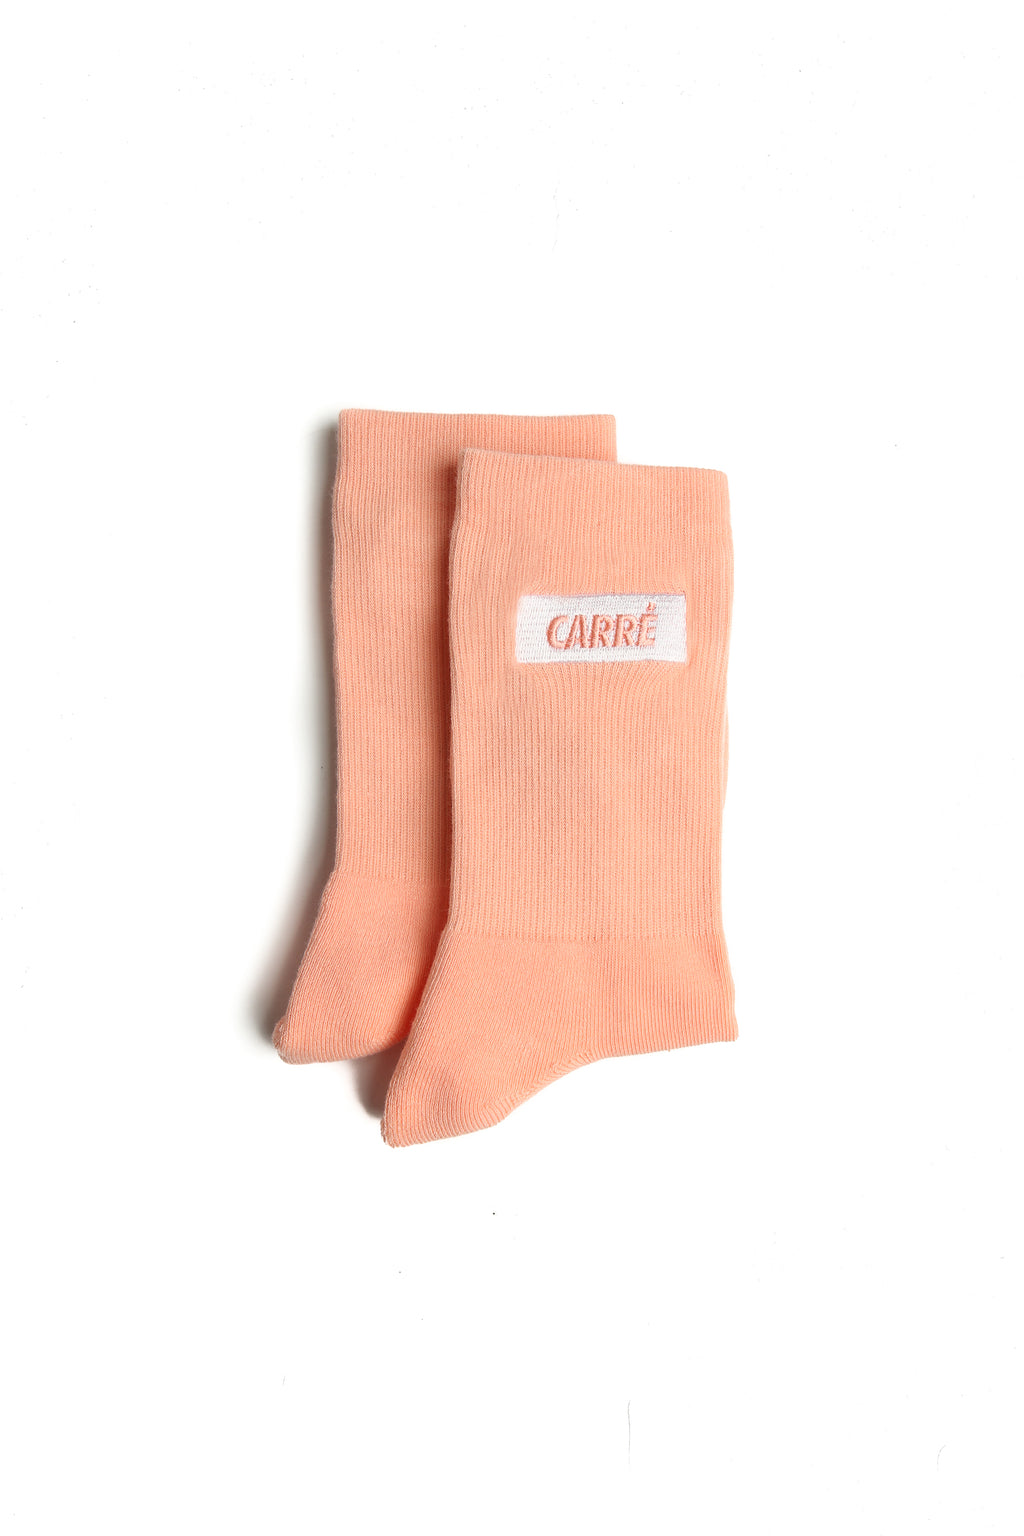 Carré Incline Socks Peach